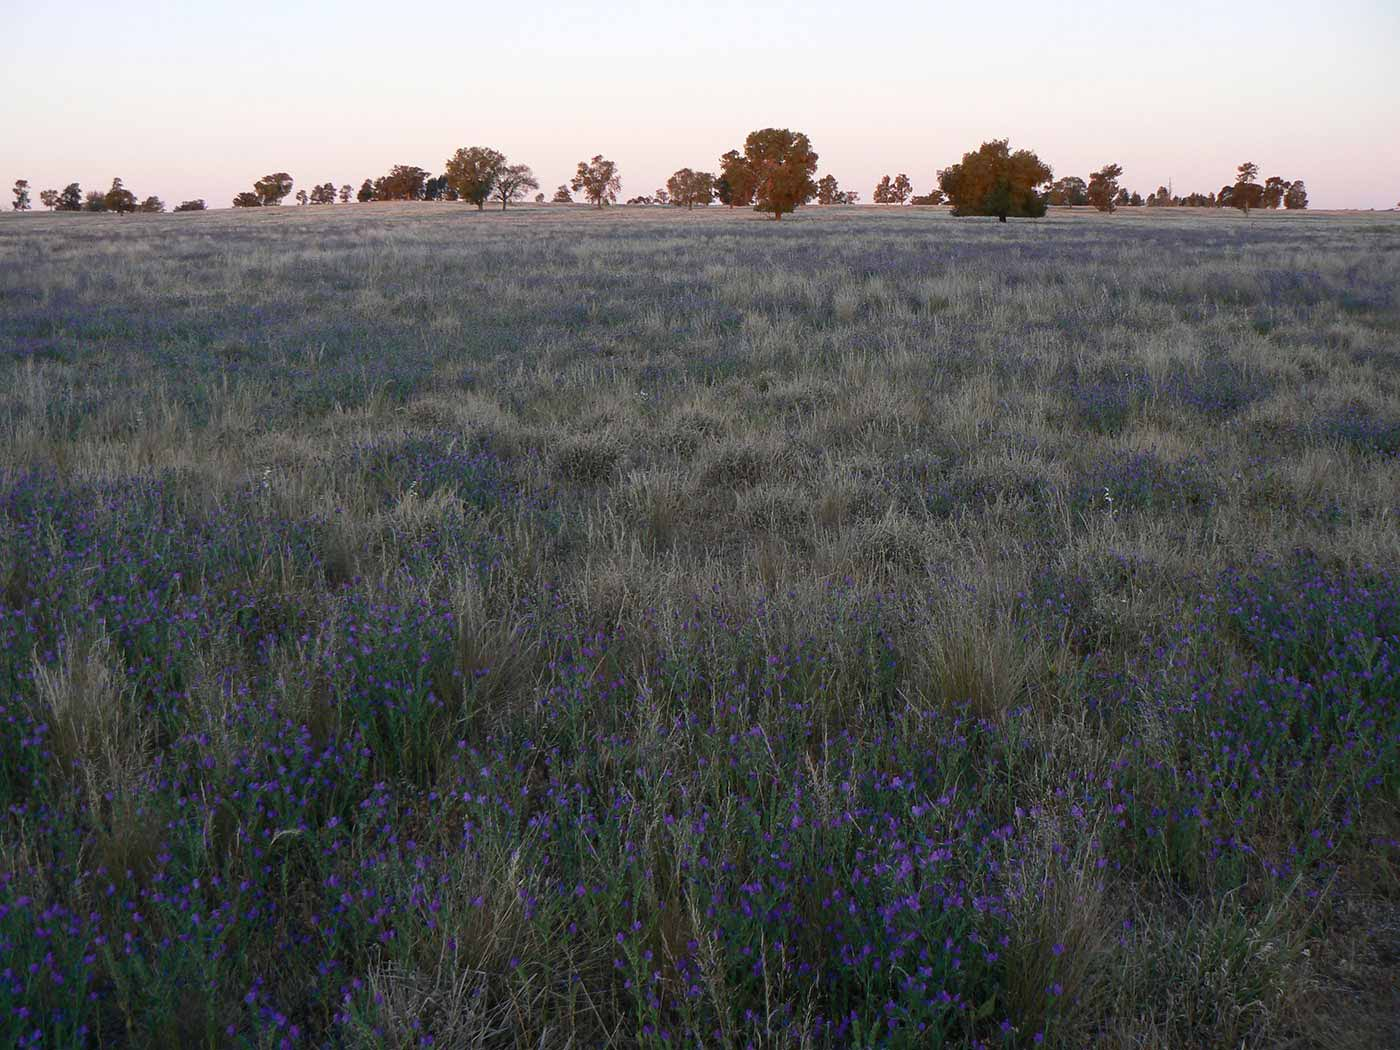 Australian farmland featuring dried grasses, purple flowers and large trees.